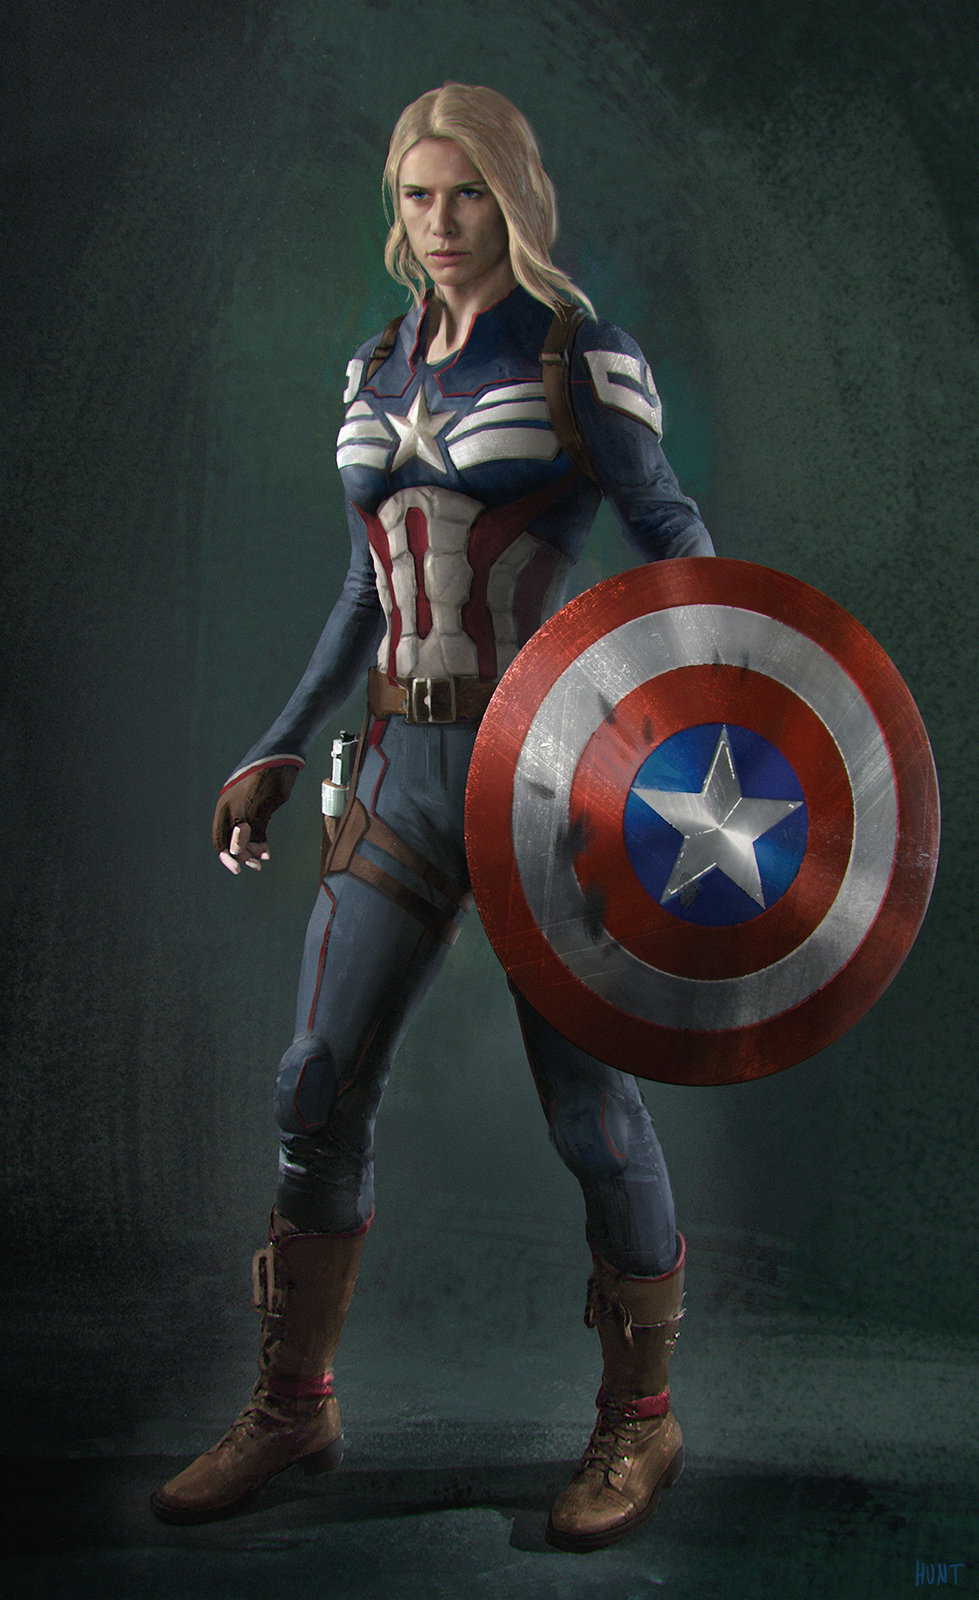 Captain America character design sheet